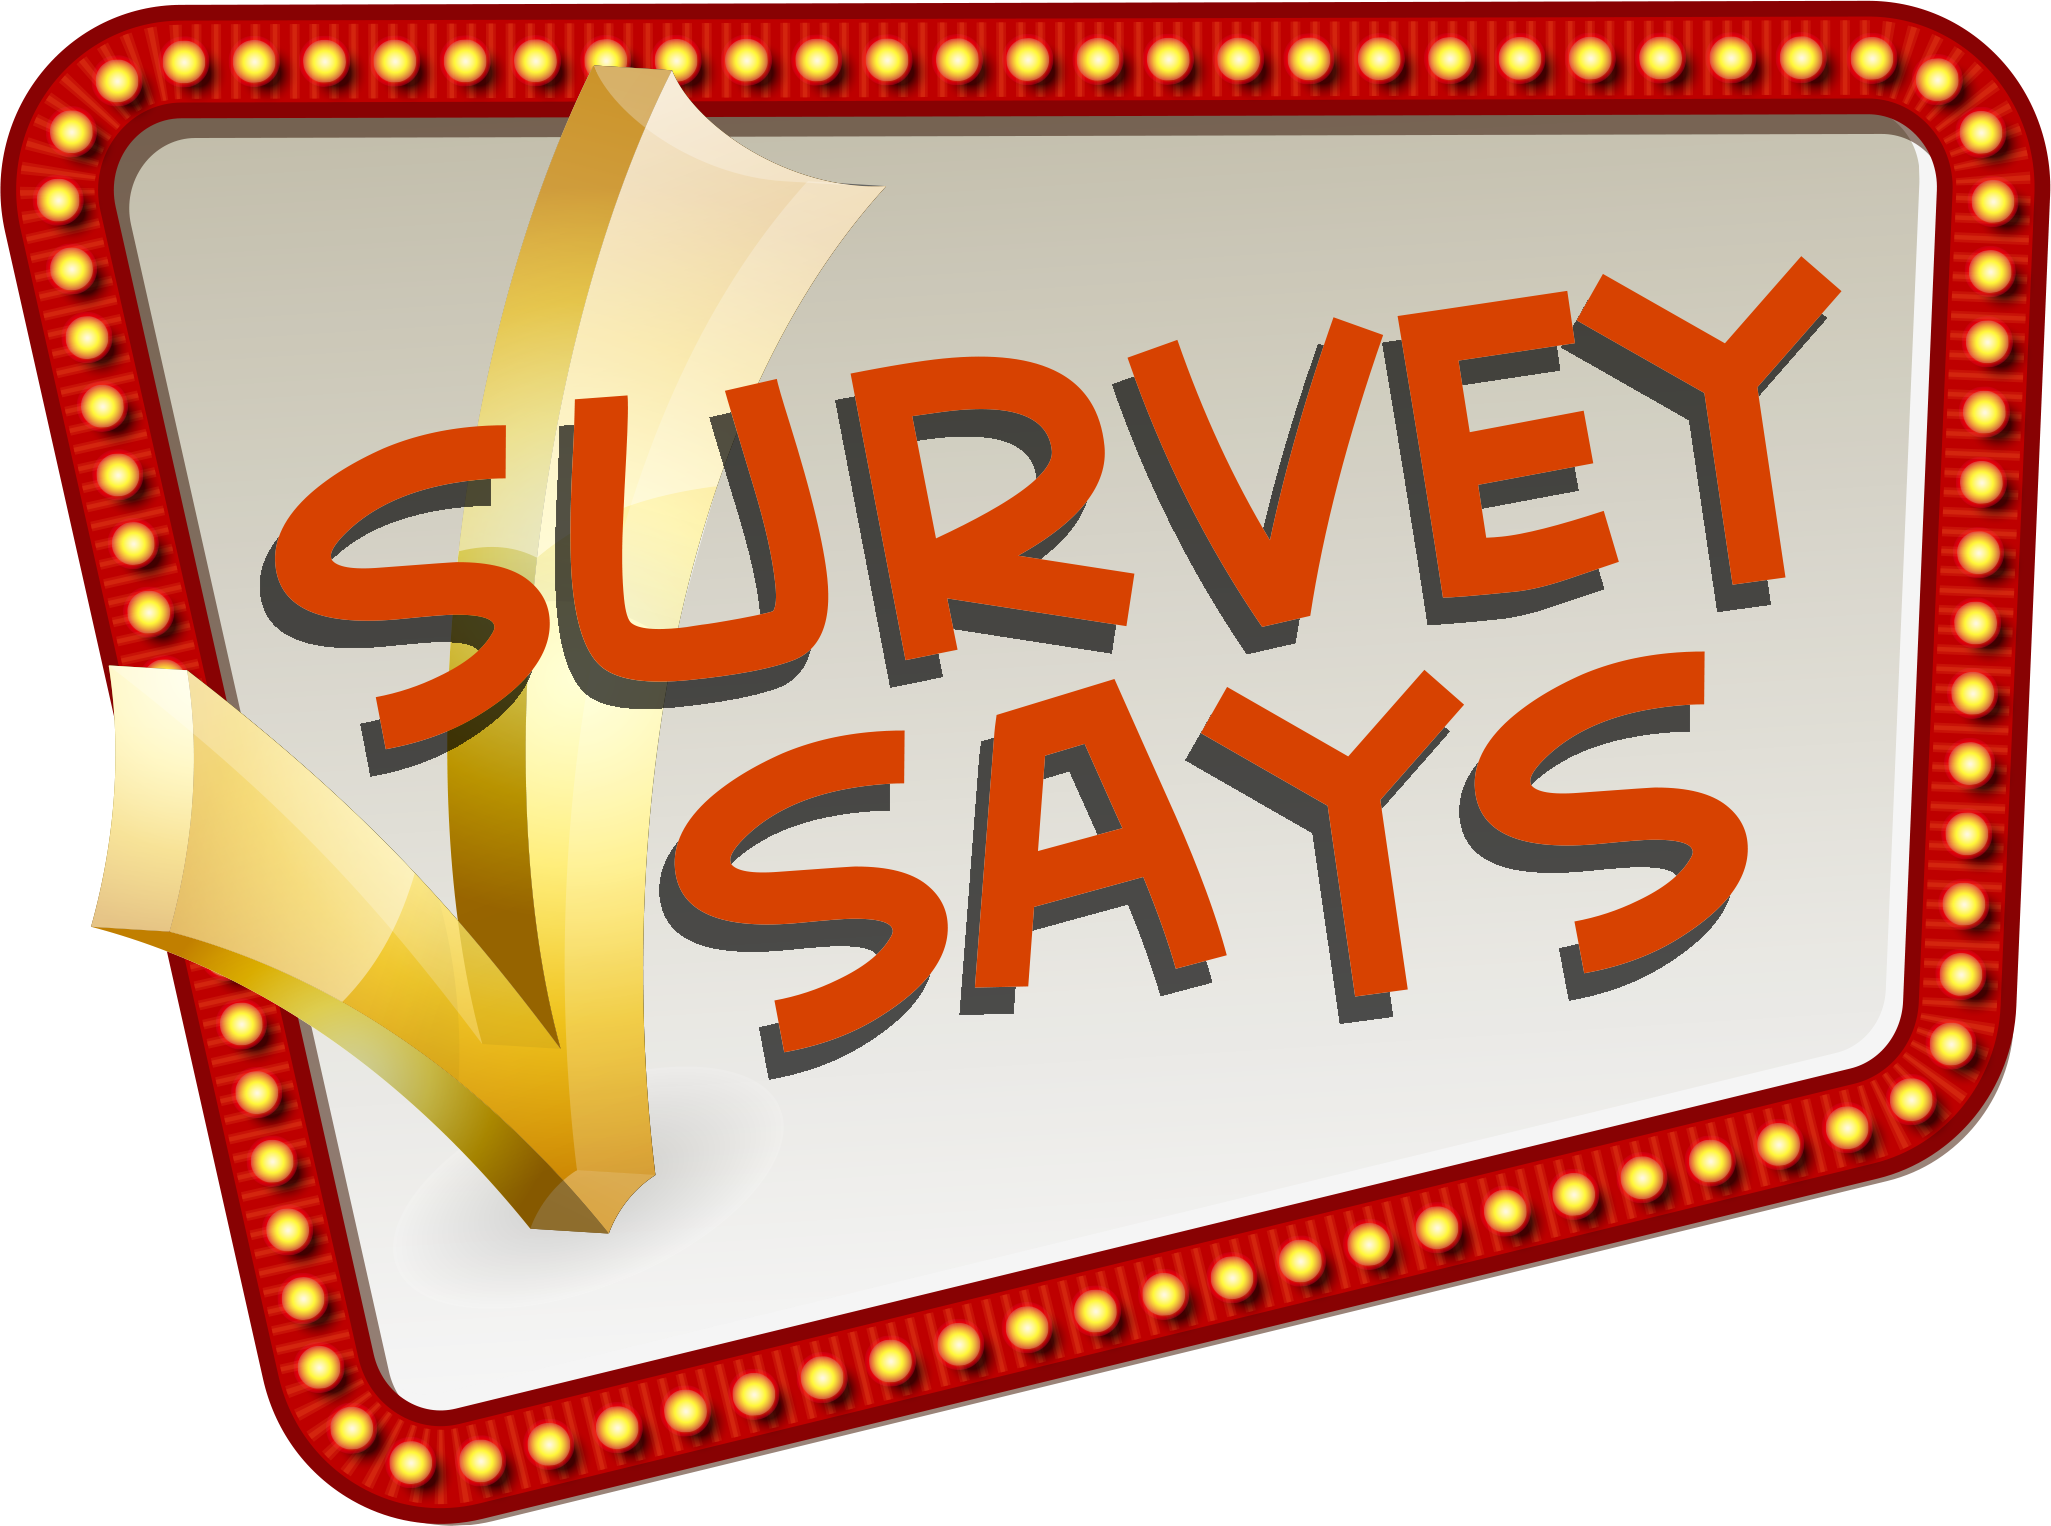 image royalty free library Television show trivia methodology. Survey clipart